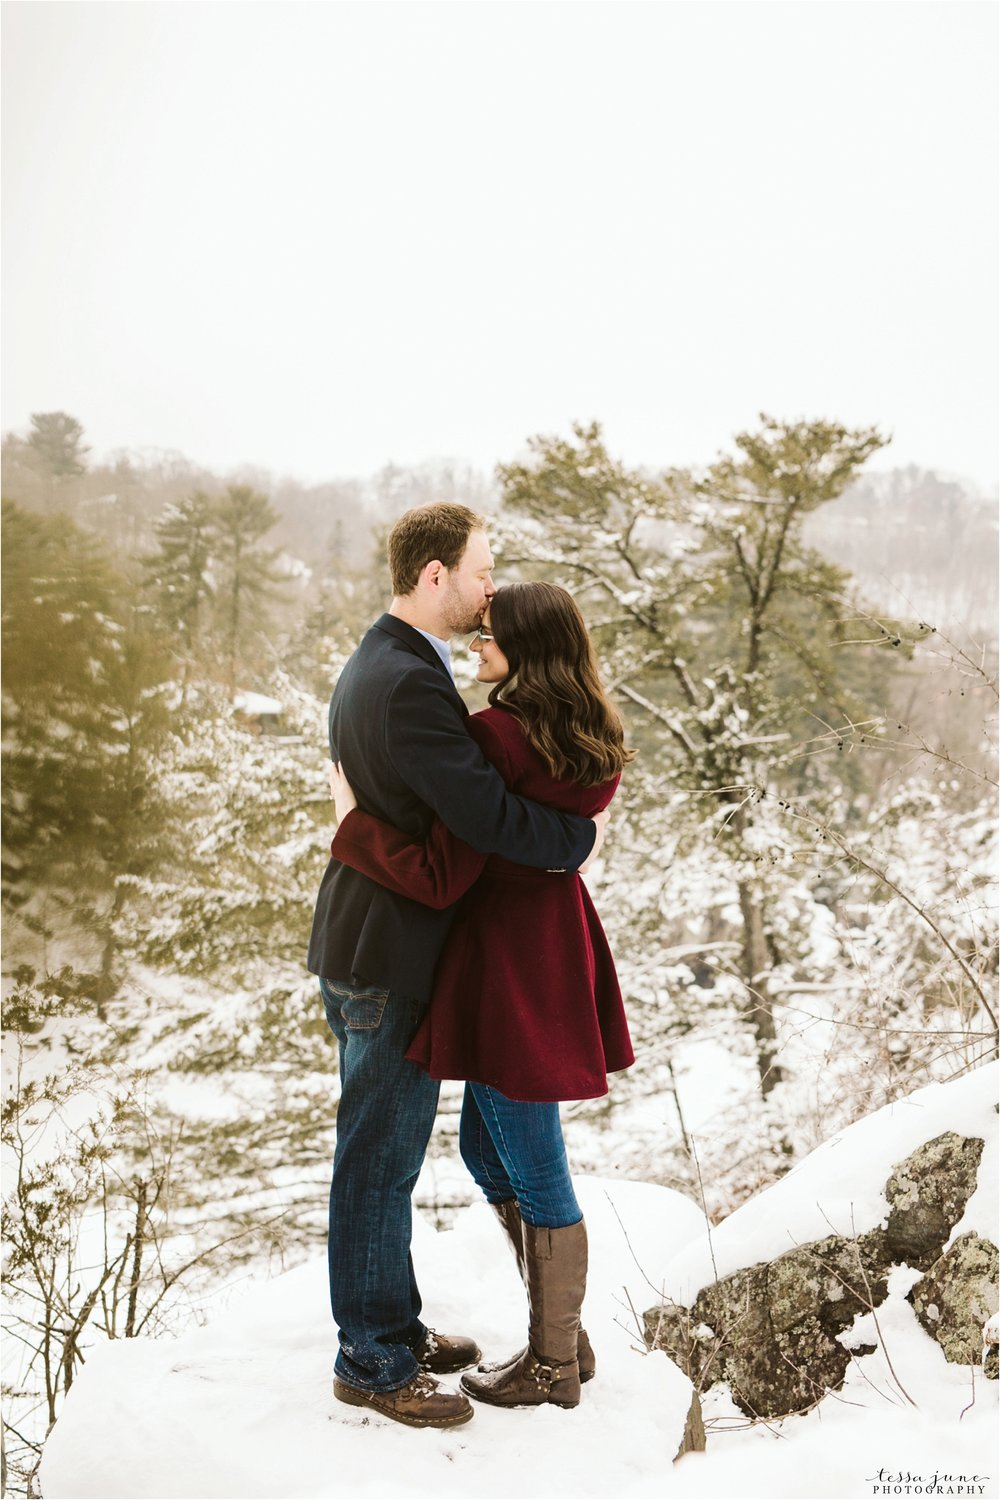 taylors-falls-winter-engagement-session-st-cloud-photographer-21.jpg